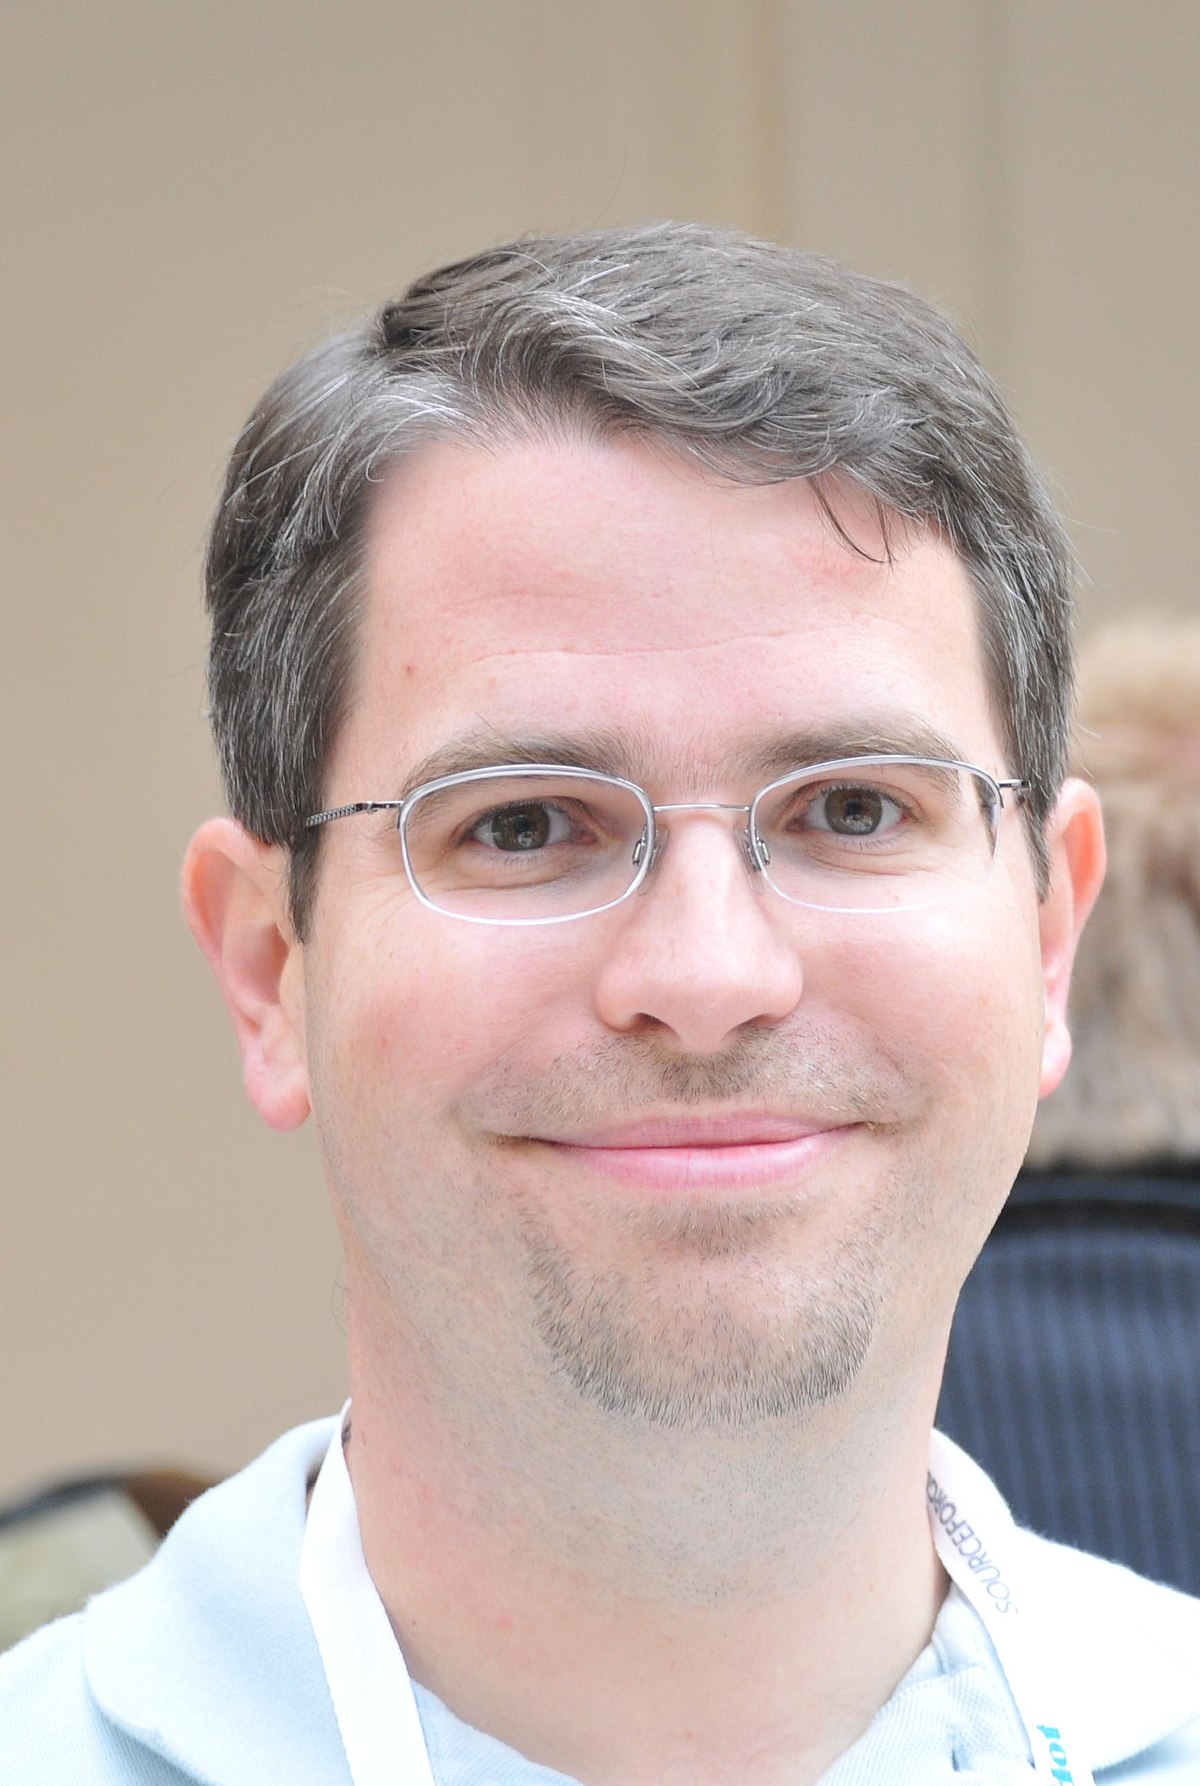 Matt Cutts - Wikipedia